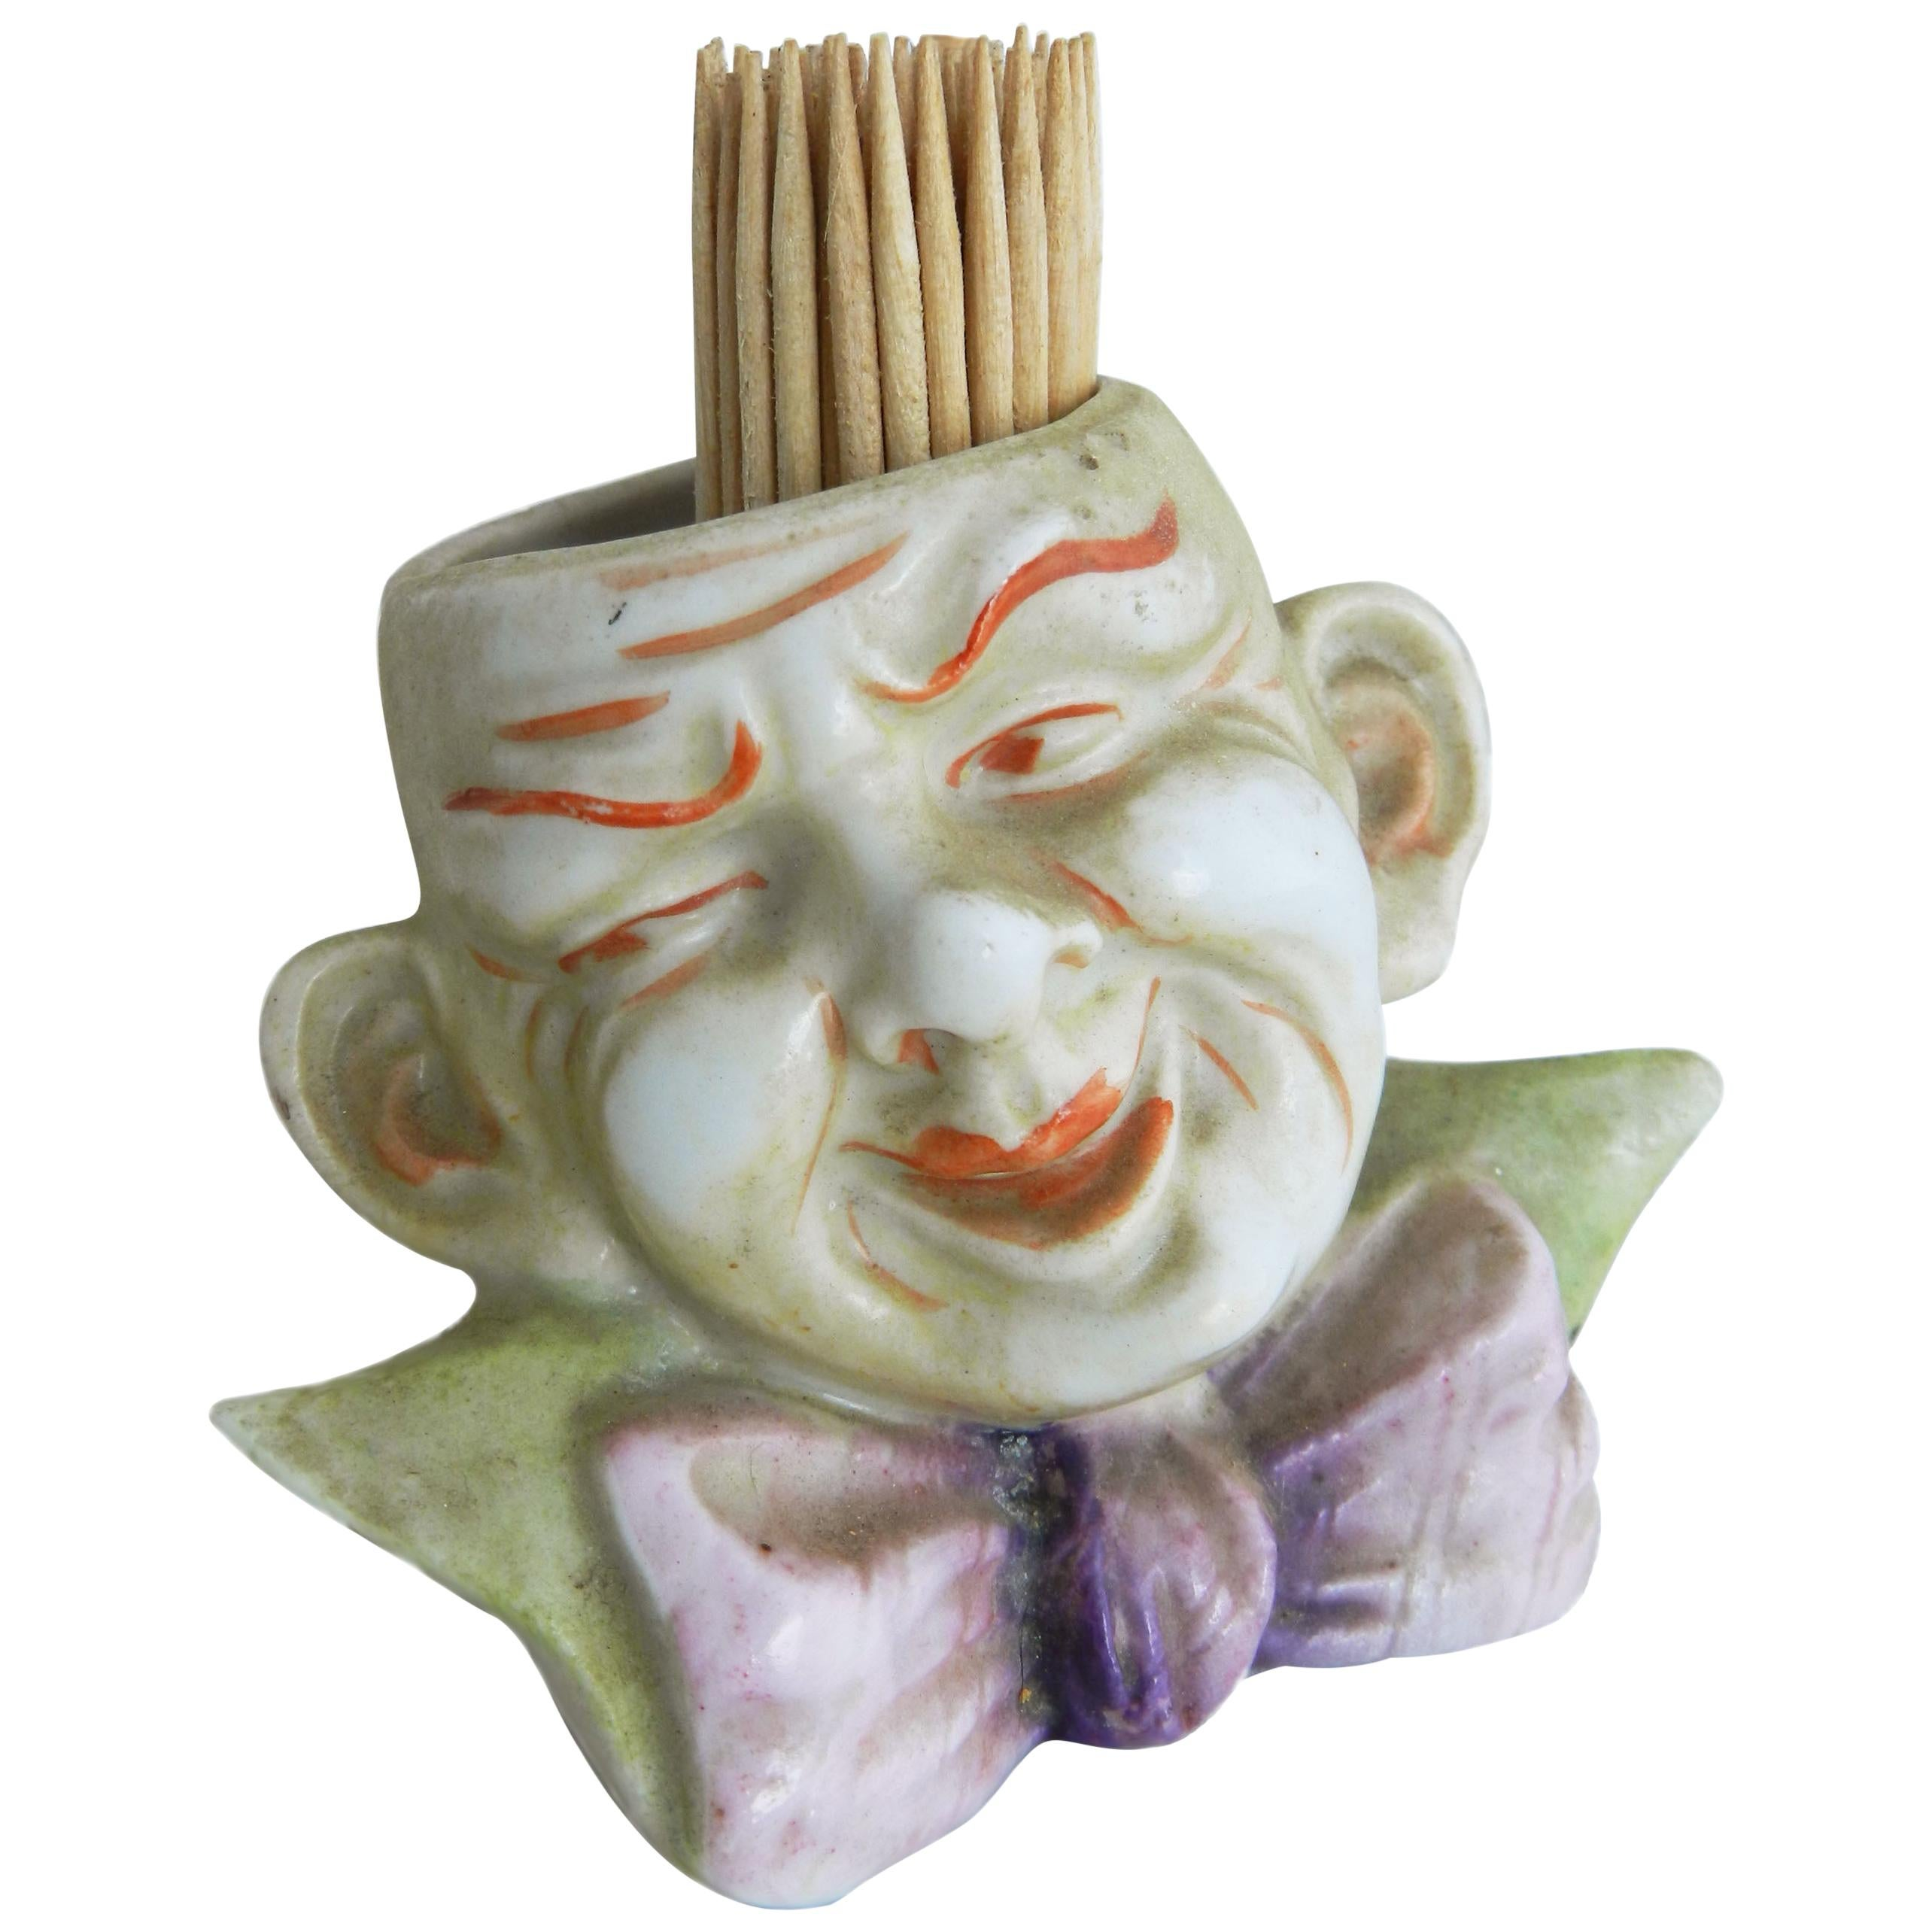 Small Jester Face Vase Tooth Pick or Flowers, circa 1920